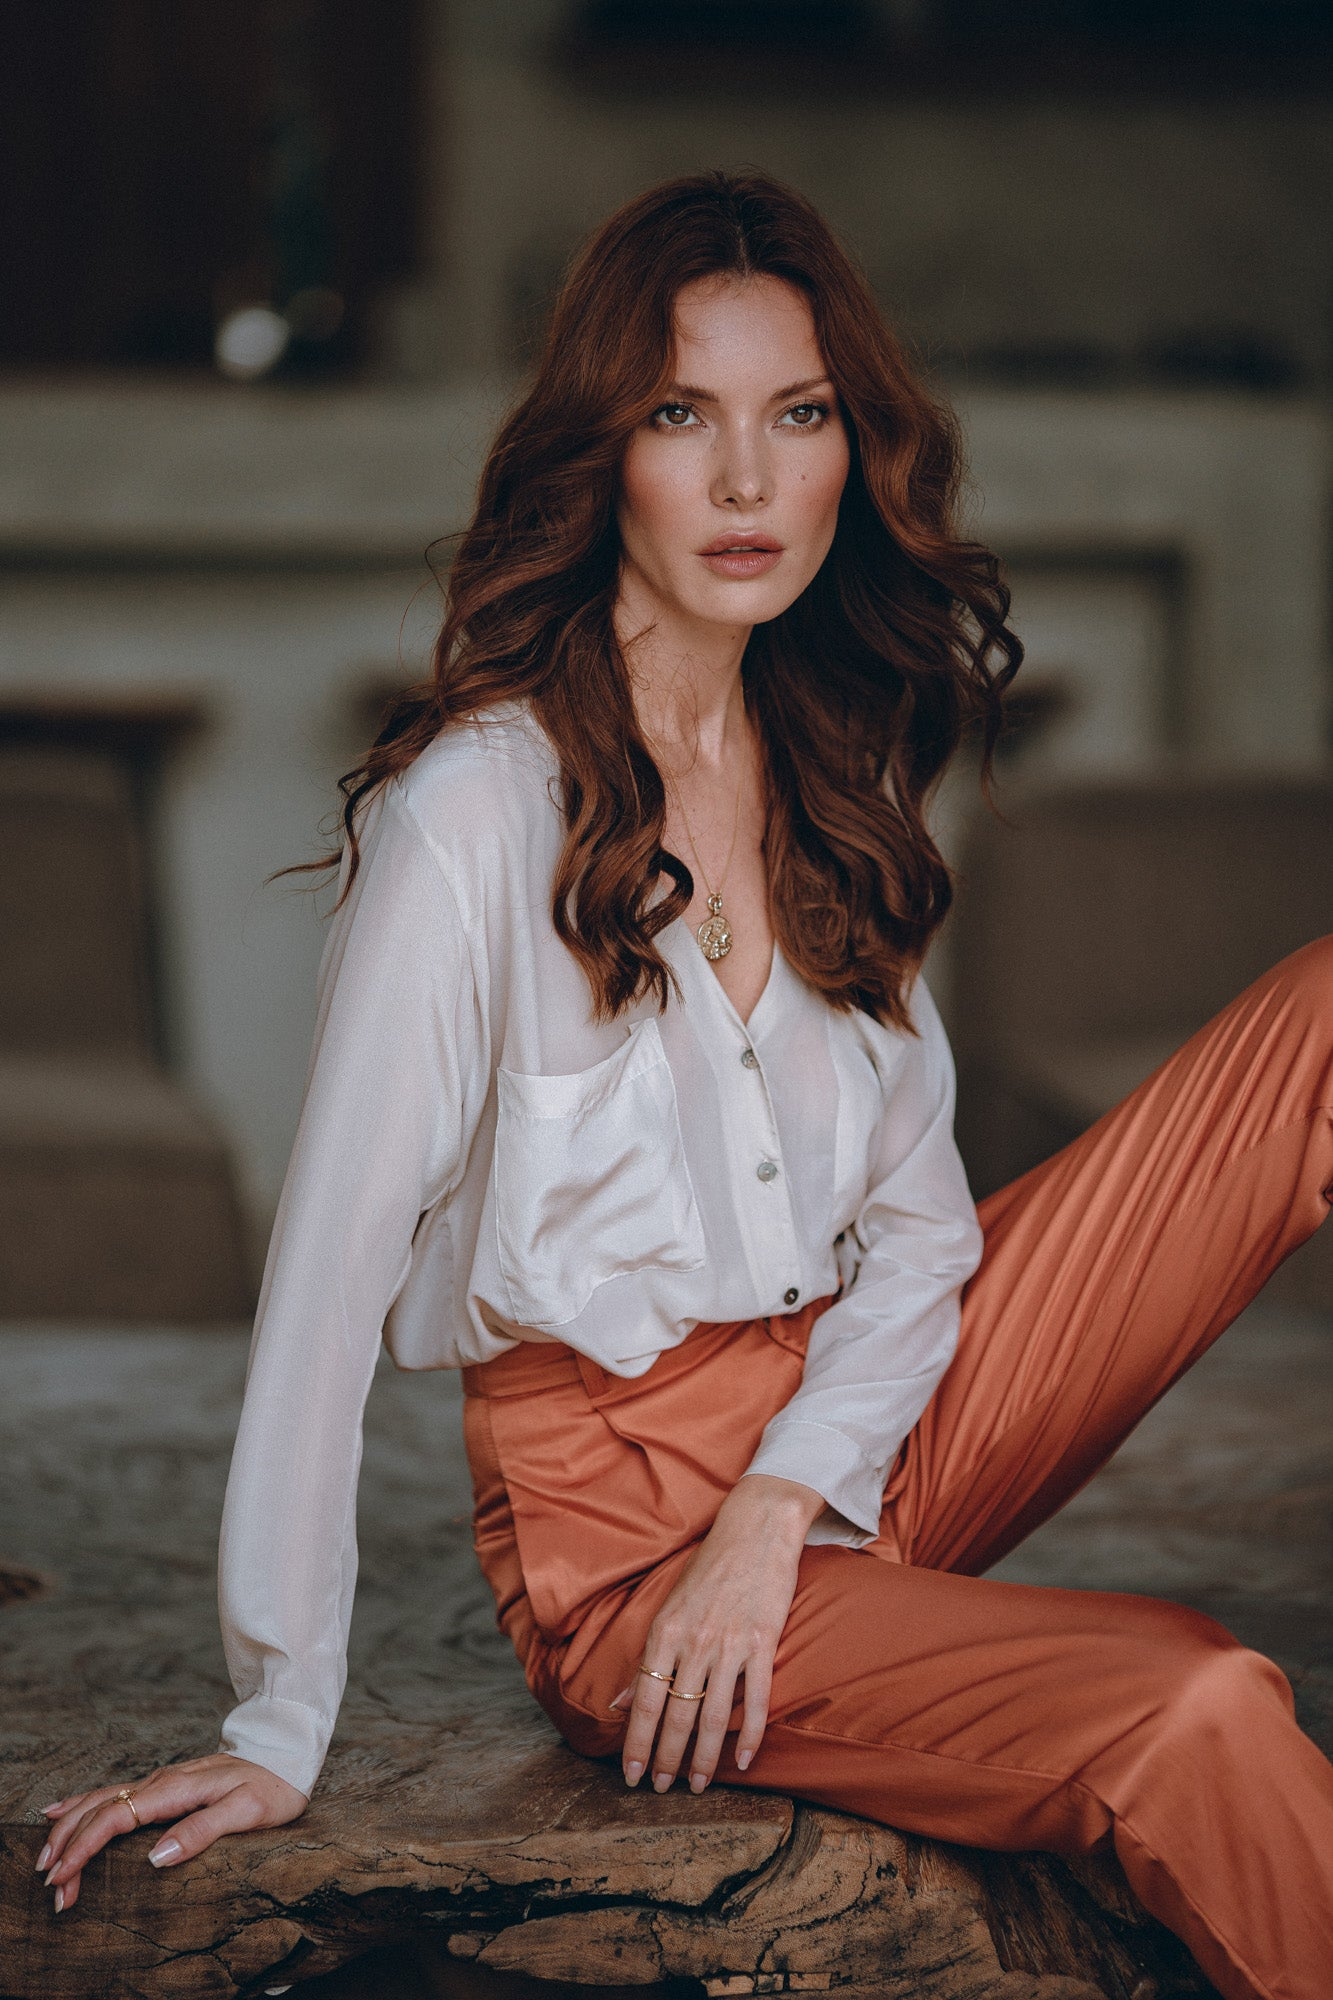 woman sitting on a table in a stunning silk shirt and satin pants